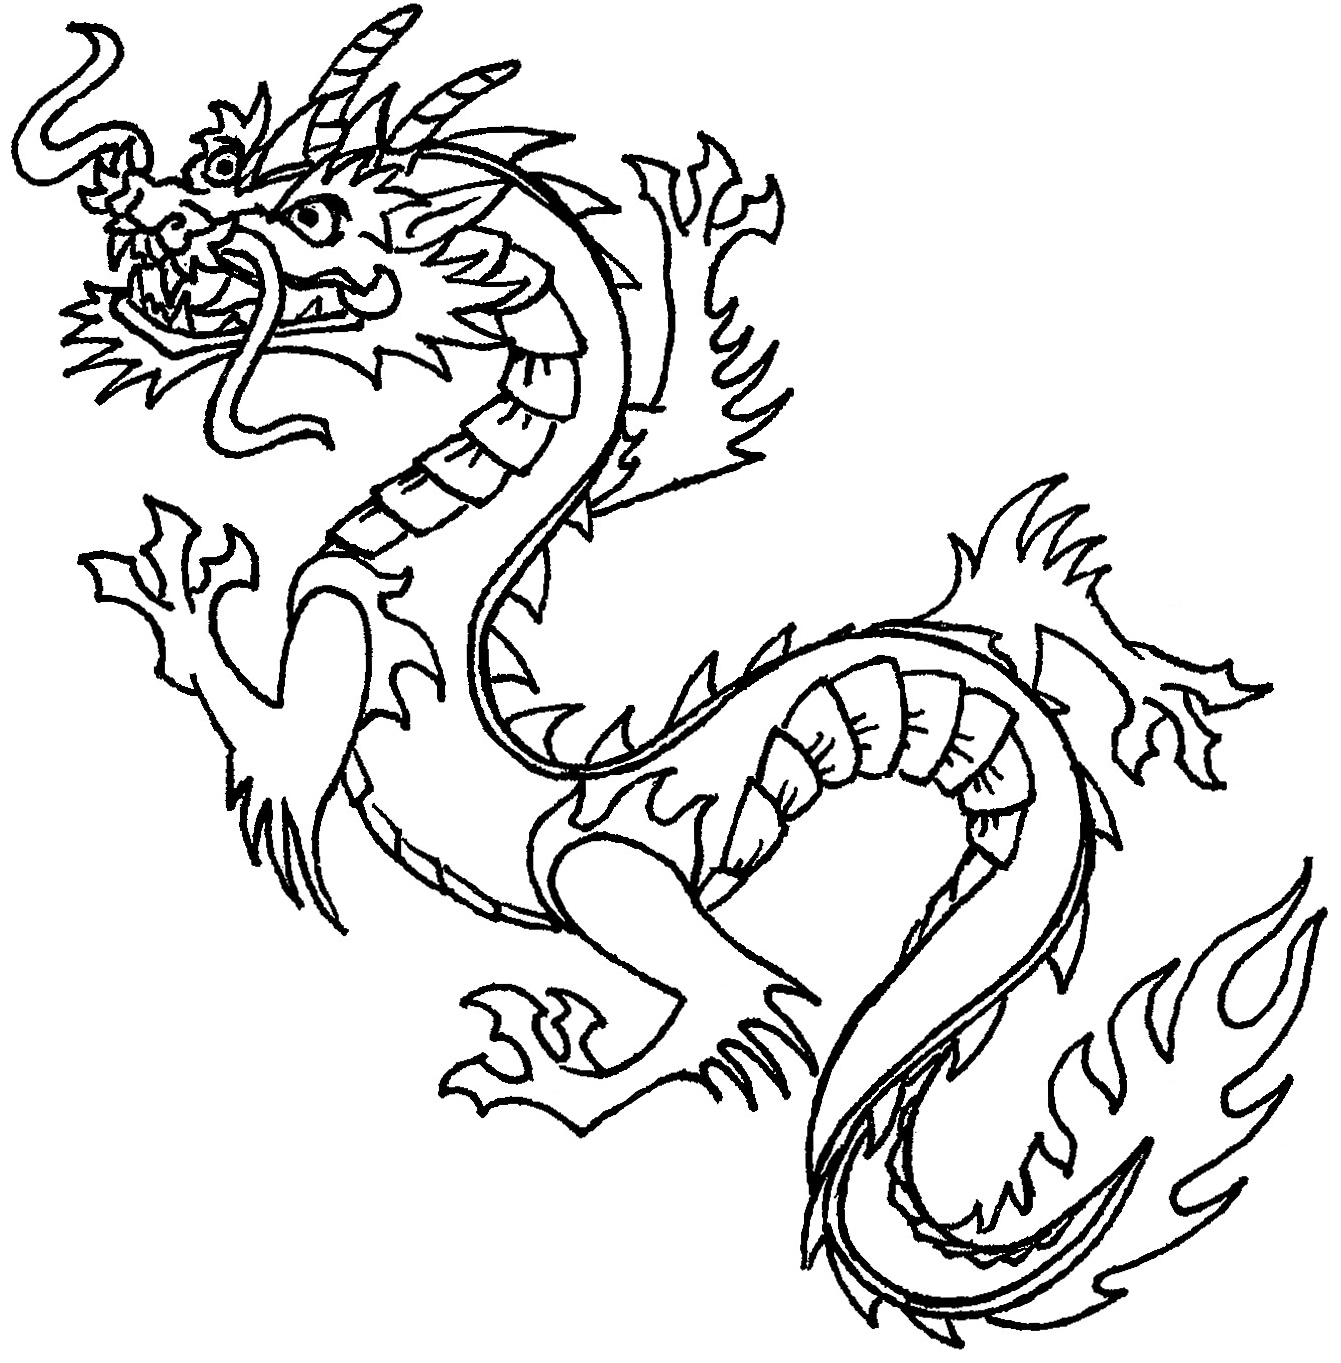 chinese dragon outline chinese dragon outline free download on clipartmag dragon outline chinese